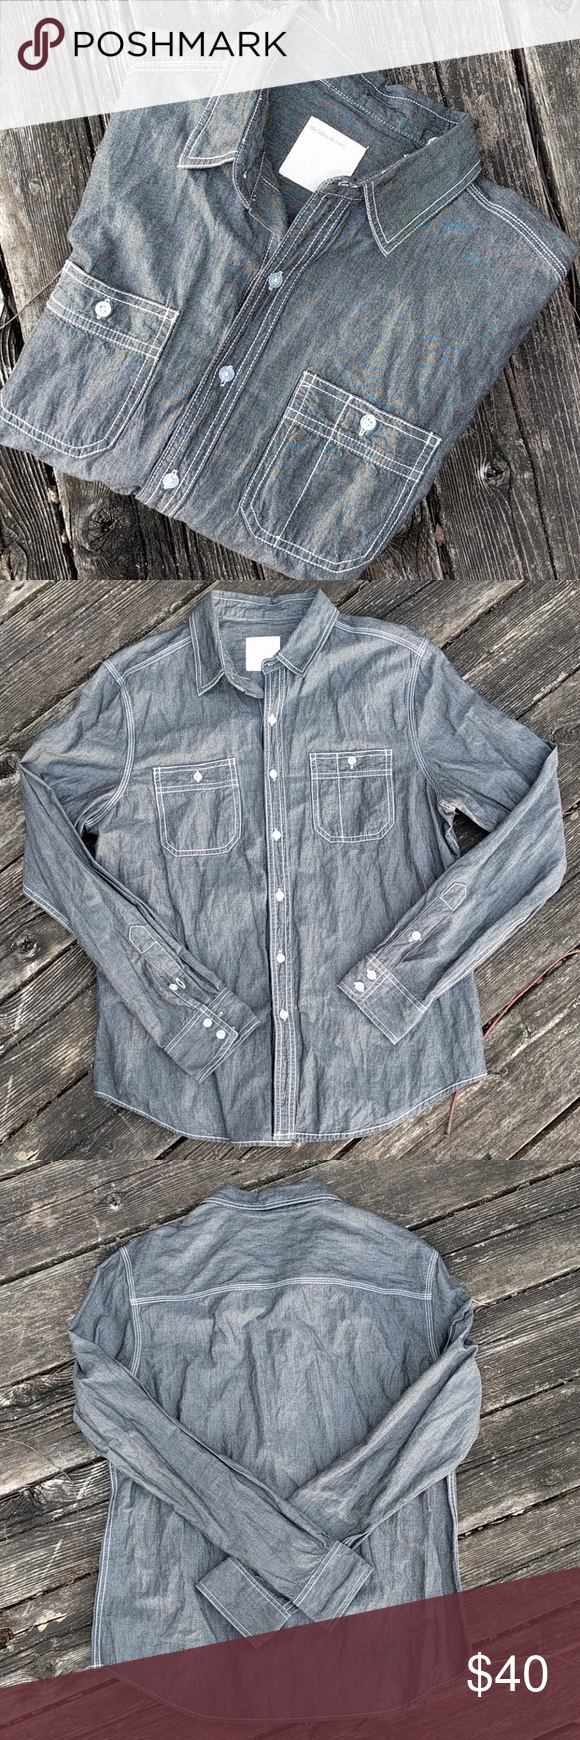 74439e93423 Life After Denim Gray Chambray Button-Down Shirt M